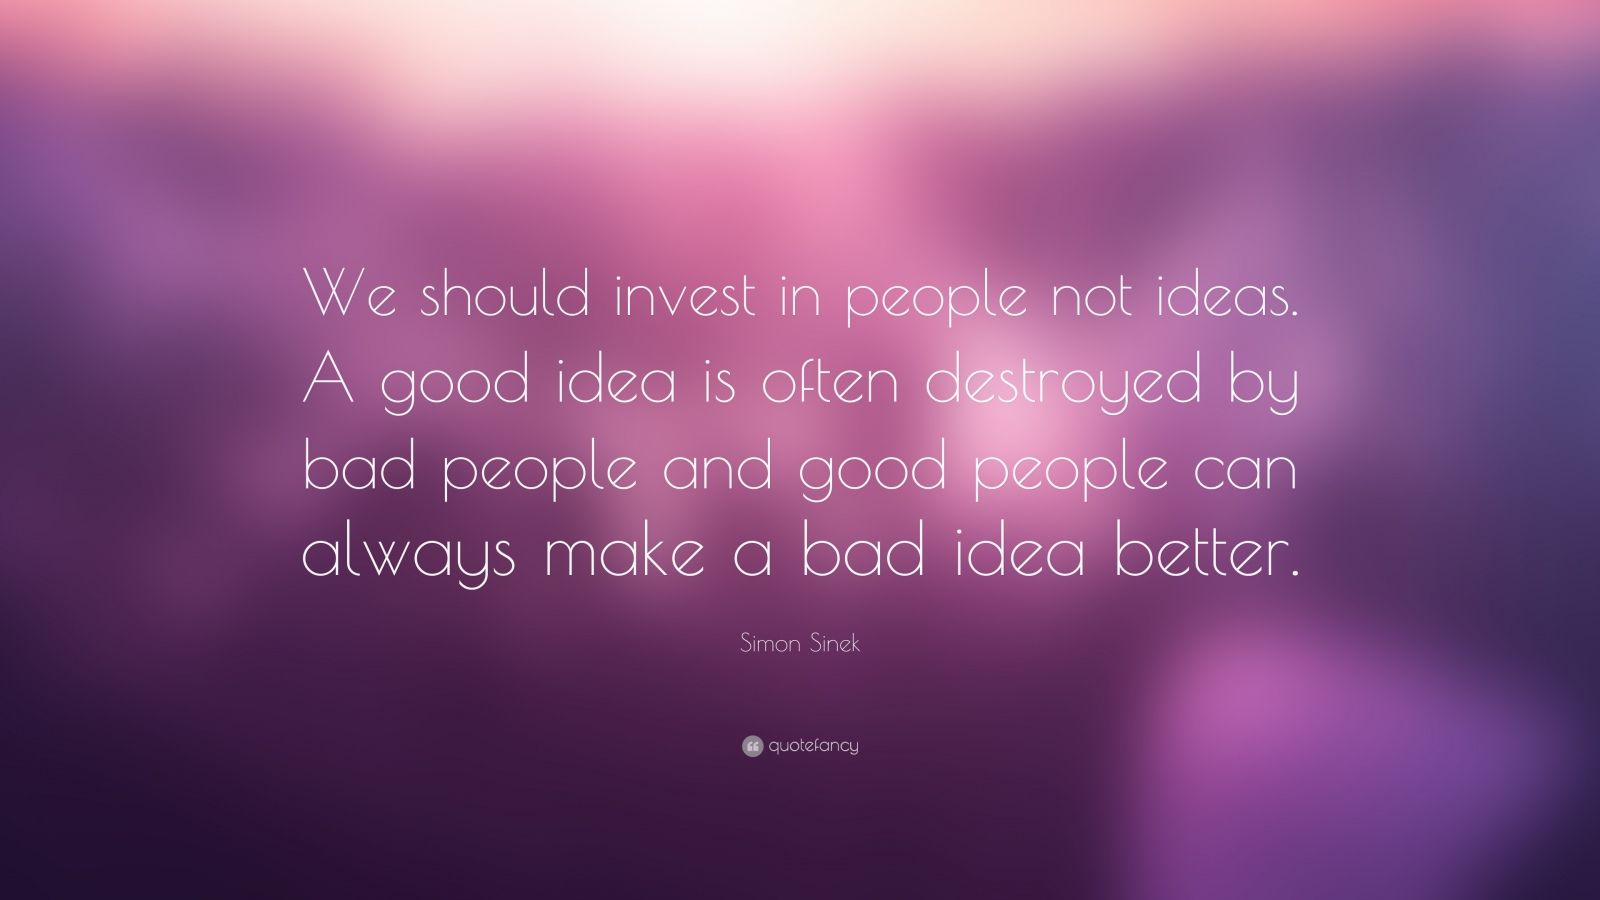 """Simon Sinek Quote: """"We should invest in people not ideas. A good idea is often destroyed by bad people and good people can always make a bad idea better."""""""